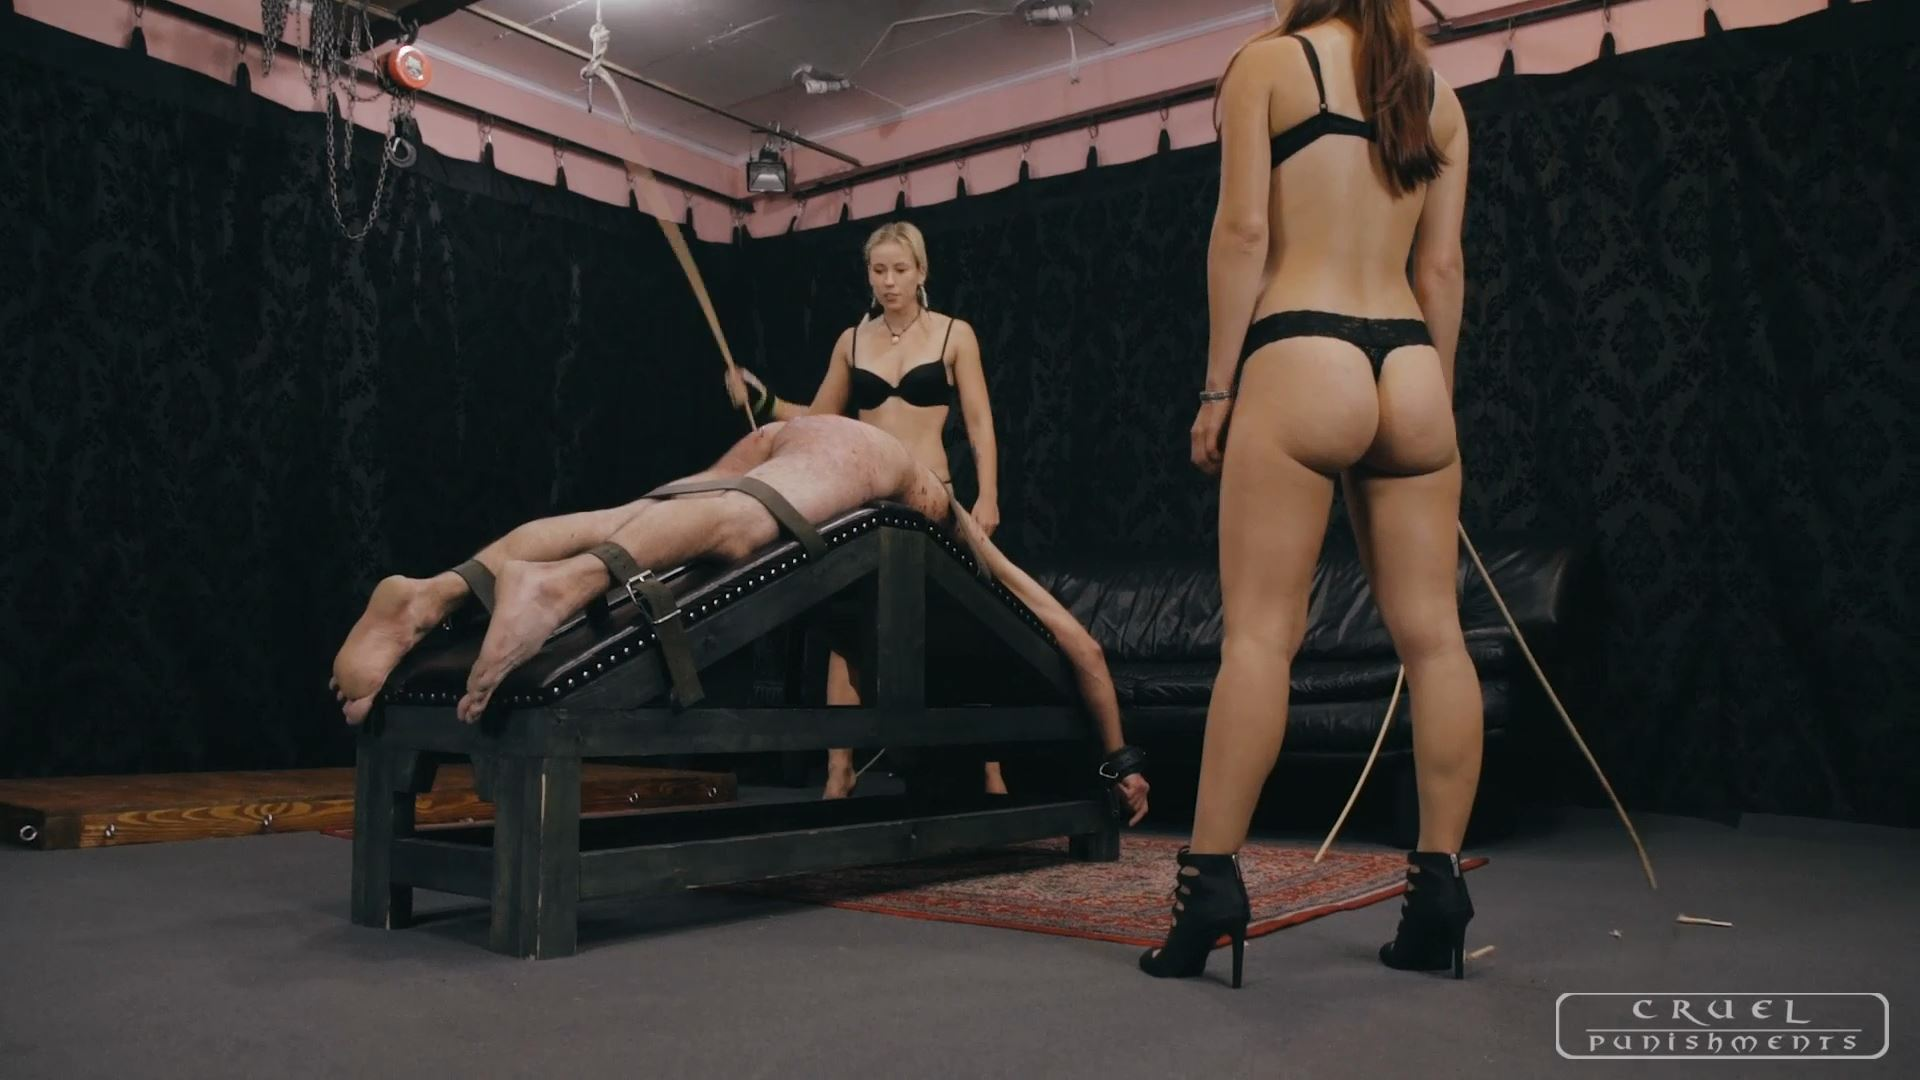 Mistress Anette, Mistress Nina In Scene: Used by two Mistresses Part 3 - CRUEL PUNISHMENTS - SEVERE FEMDOM - FULL HD/1080p/MP4